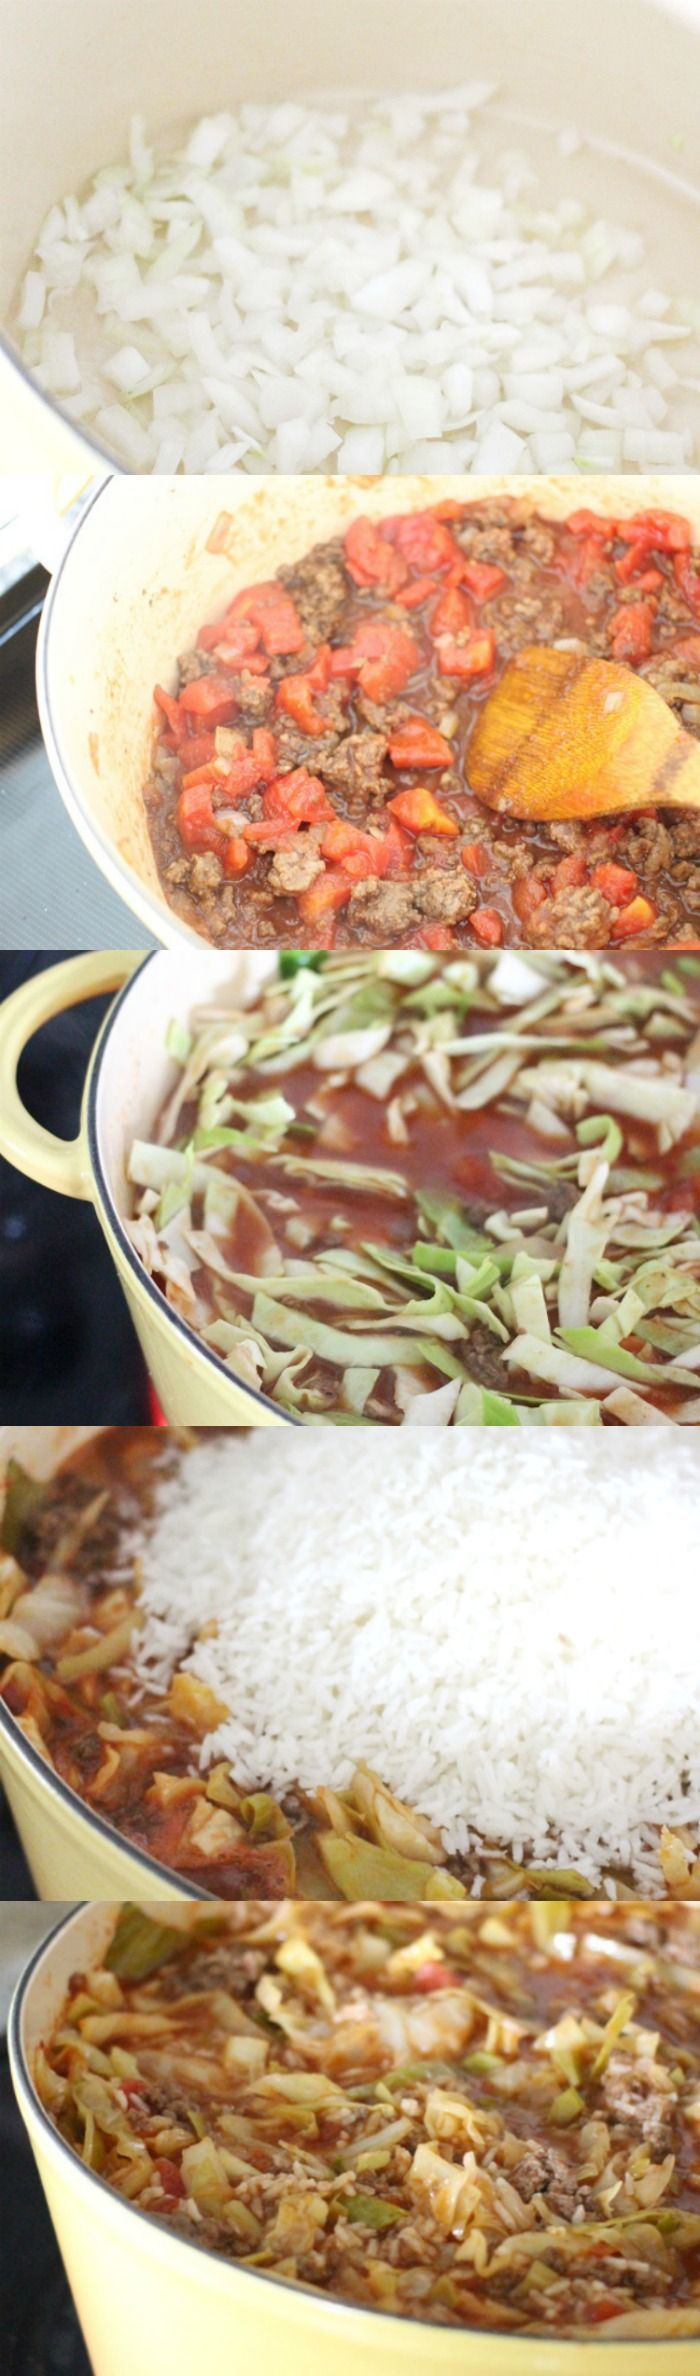 my family couldn't get enough of this! Unstuffed Stuffed Cabbage Roll Soup with Ground Beef and Tomato